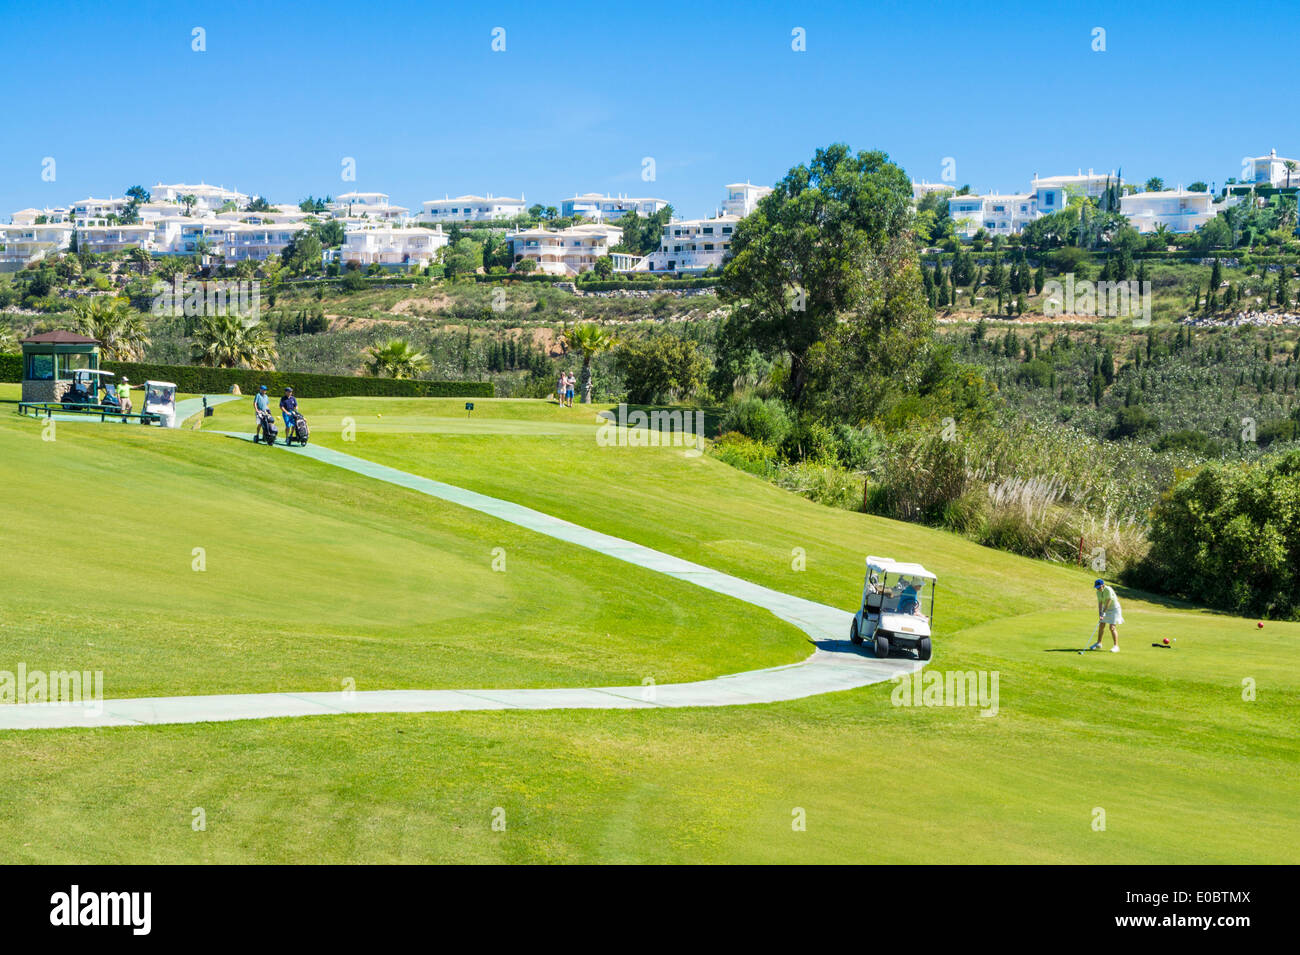 Golf buggy parked at the first tee Parque da Floresta golf course Vale do Poco Budens  near Salema Algarve Portugal - Stock Image